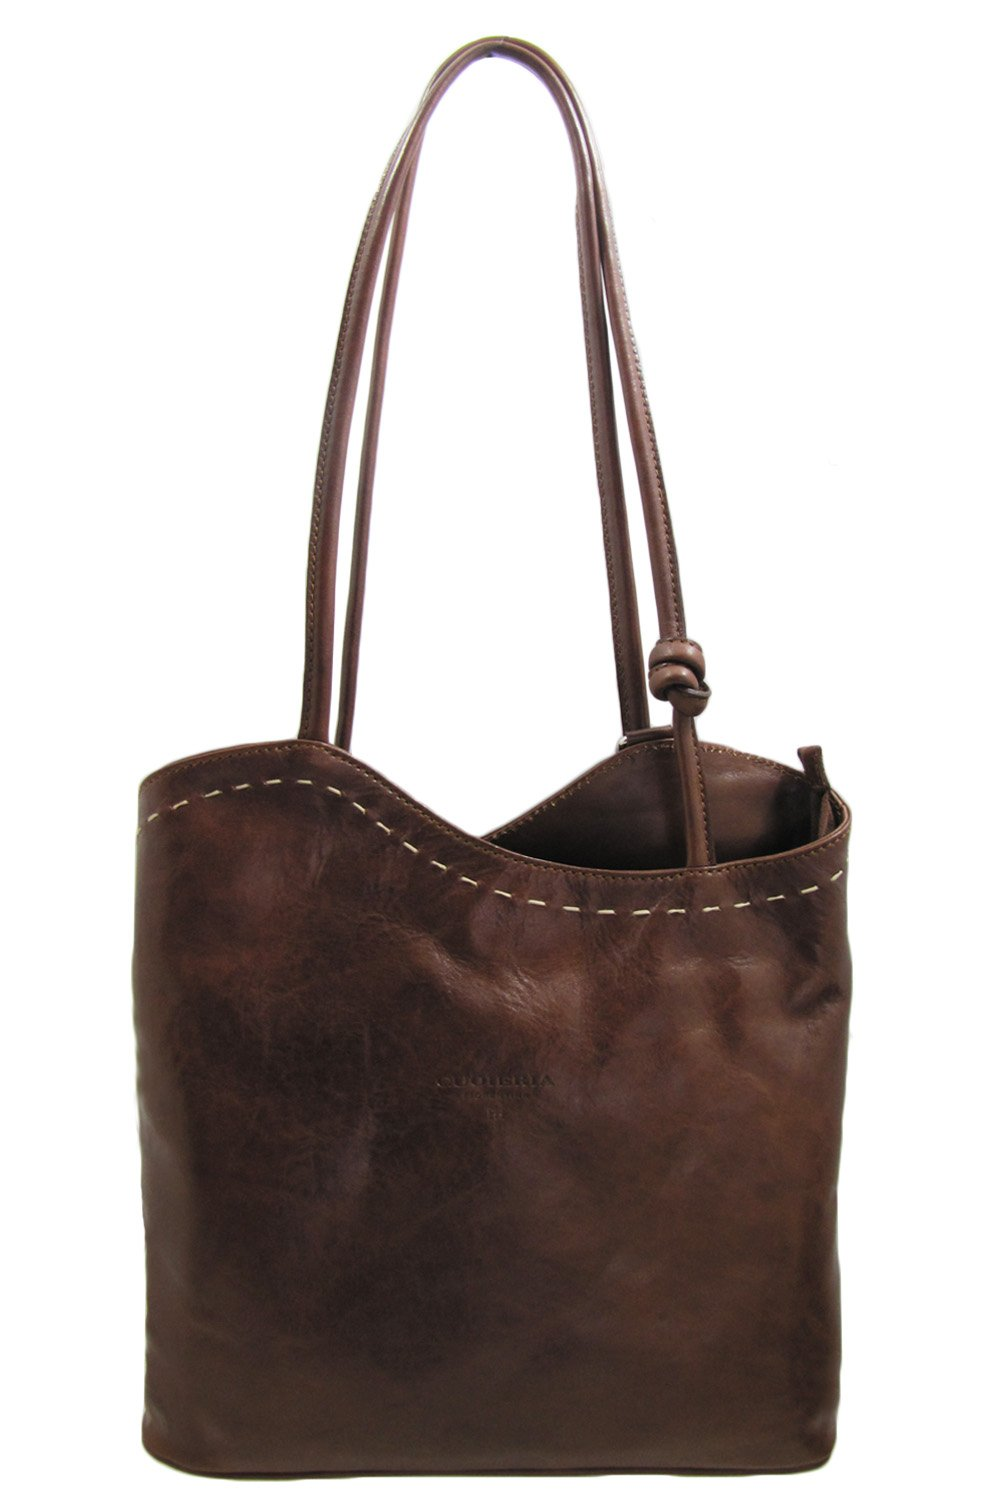 Cuoieria Fiorentina Italian Leather Convertible Shoulder Backpack Handbag (Brown)